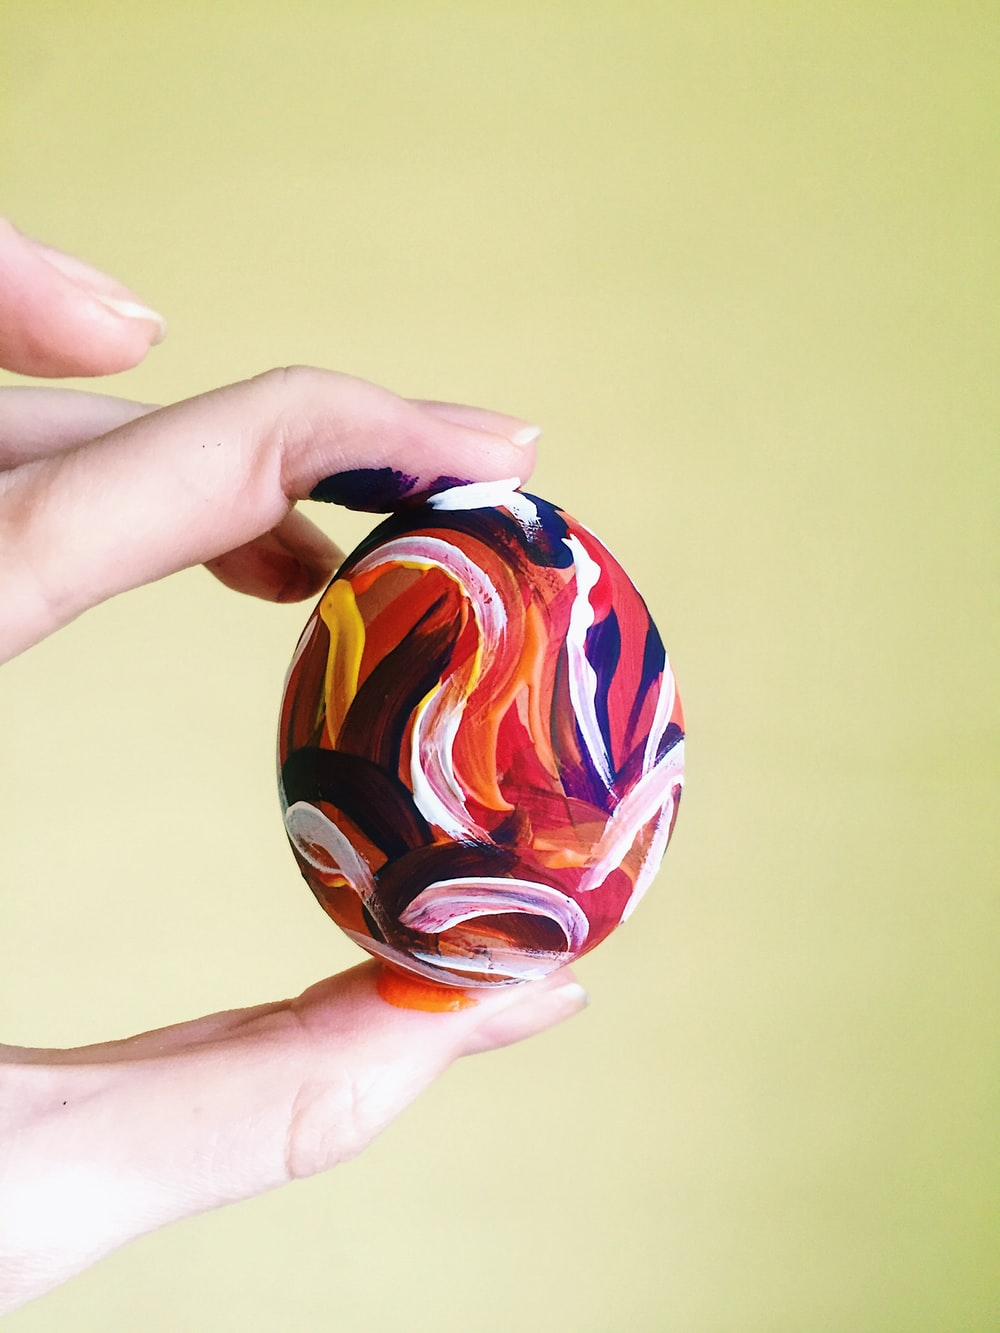 person holding red blue and yellow ball